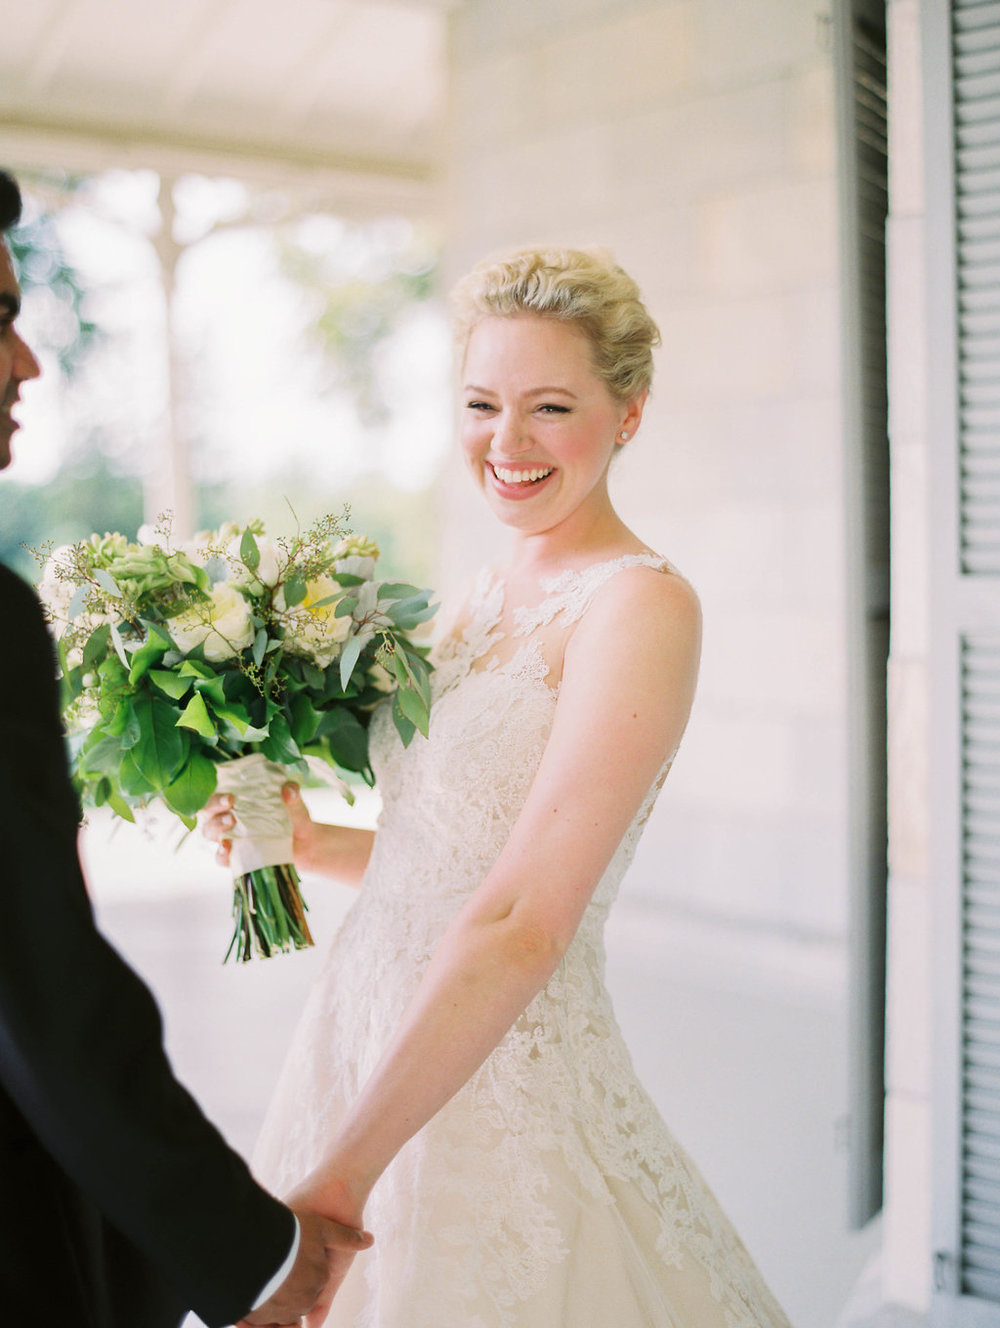 Blushing Bride at Luxury Wedding